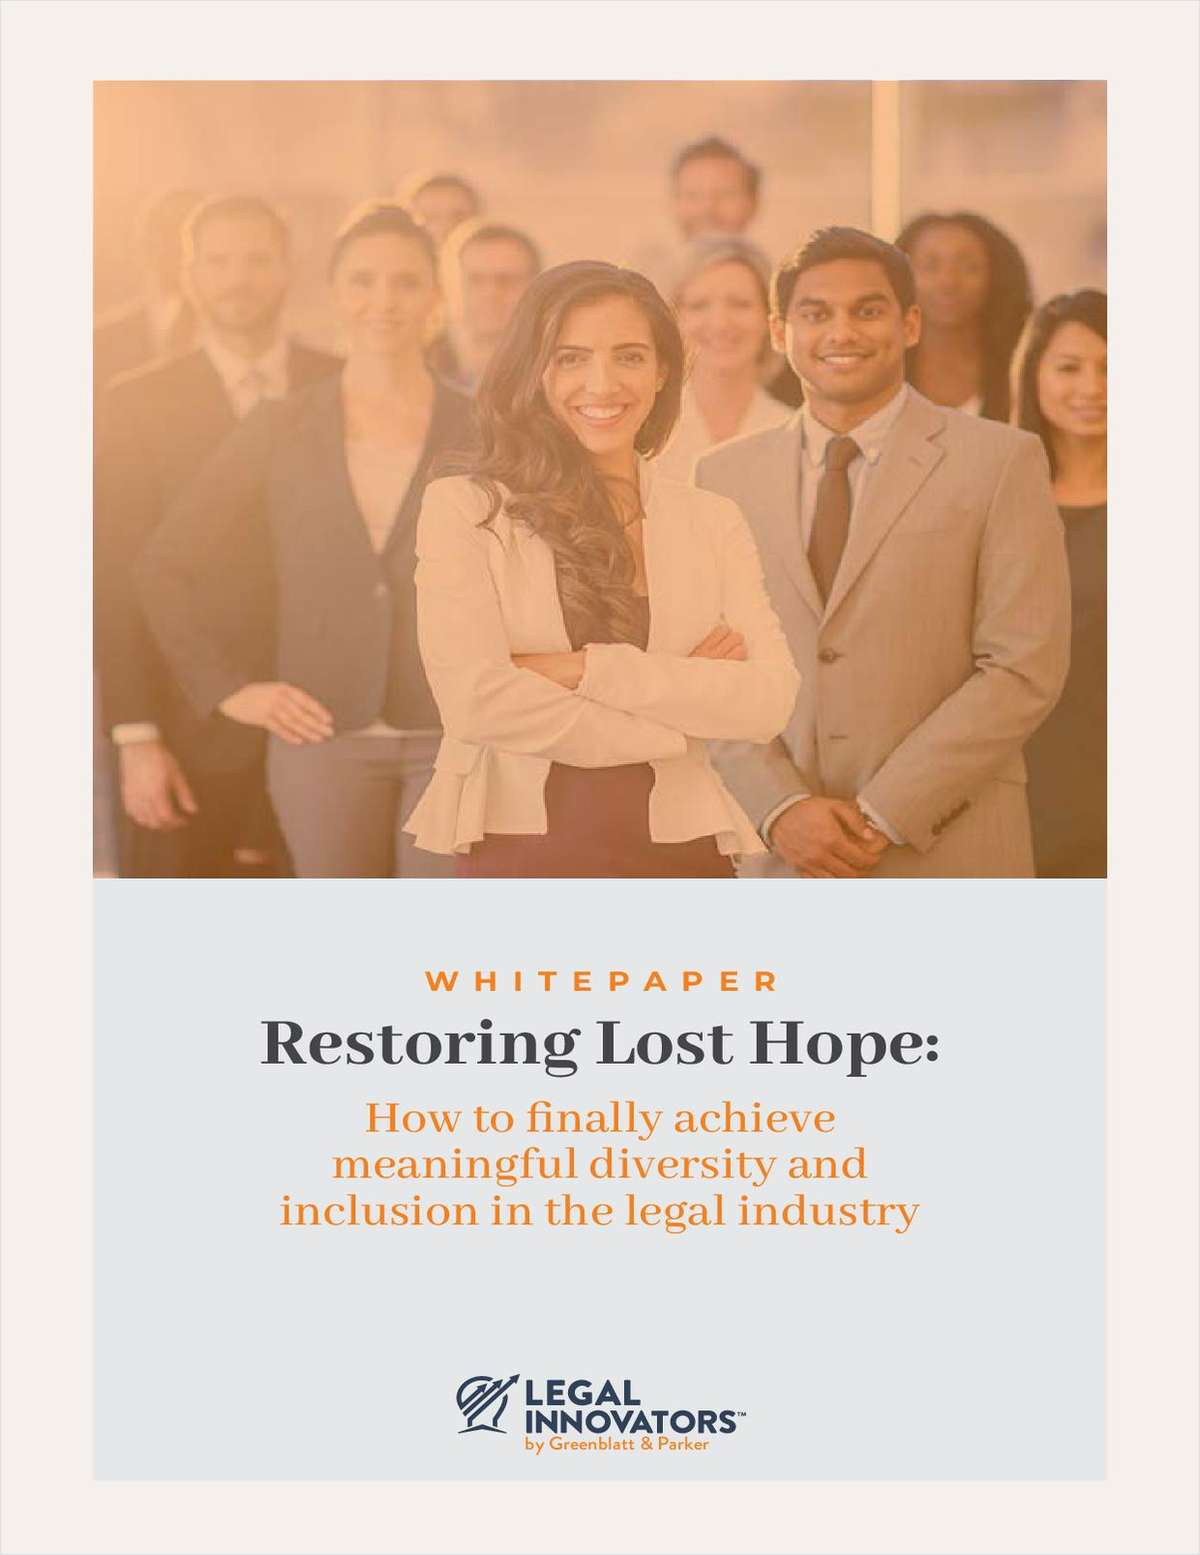 Restoring Lost Hope: How to Finally Achieve Meaningful Diversity and Inclusion in the Legal Industry